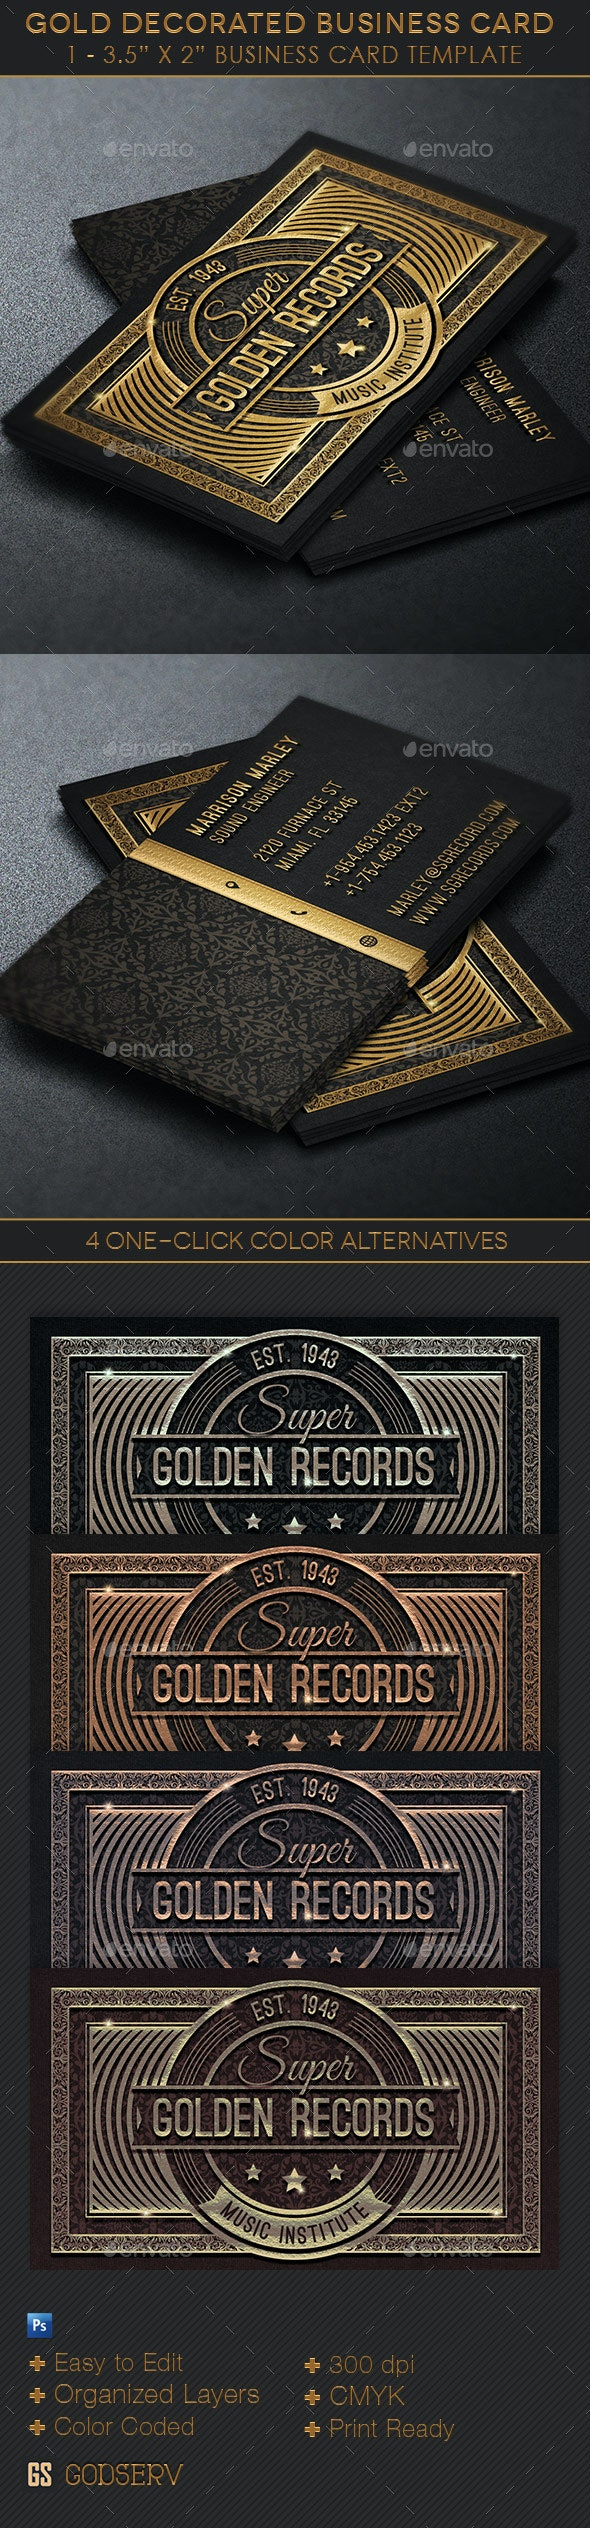 Gold Decorated Business Card Template - Industry Specific Business Cards